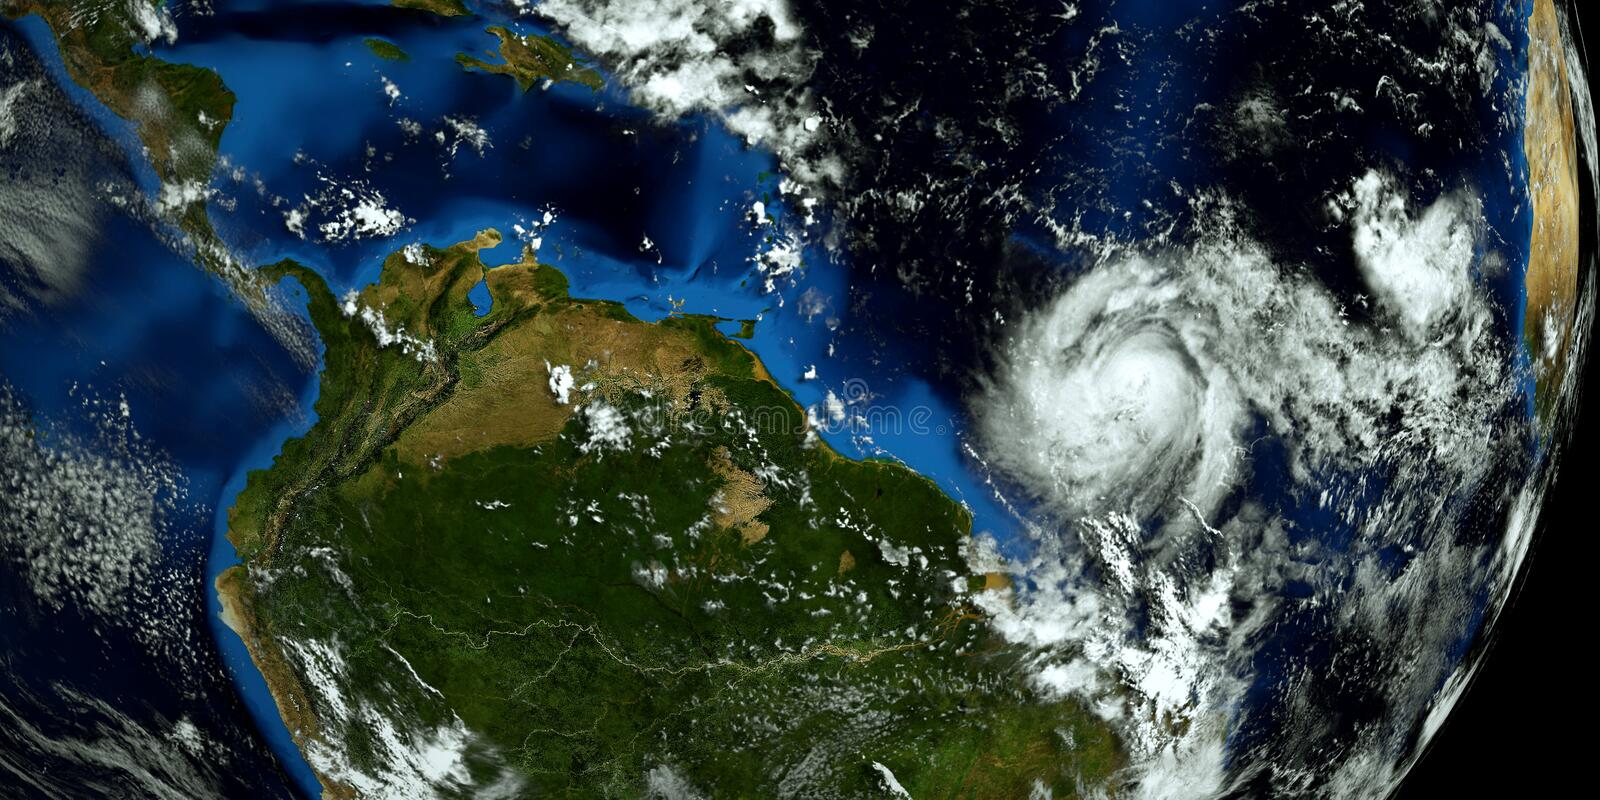 Extremely detailed and realistic high resolution 3D illustration of 2 hurricanes approaching the USA. Shot from Space. Elements of. This image are furnished by stock images